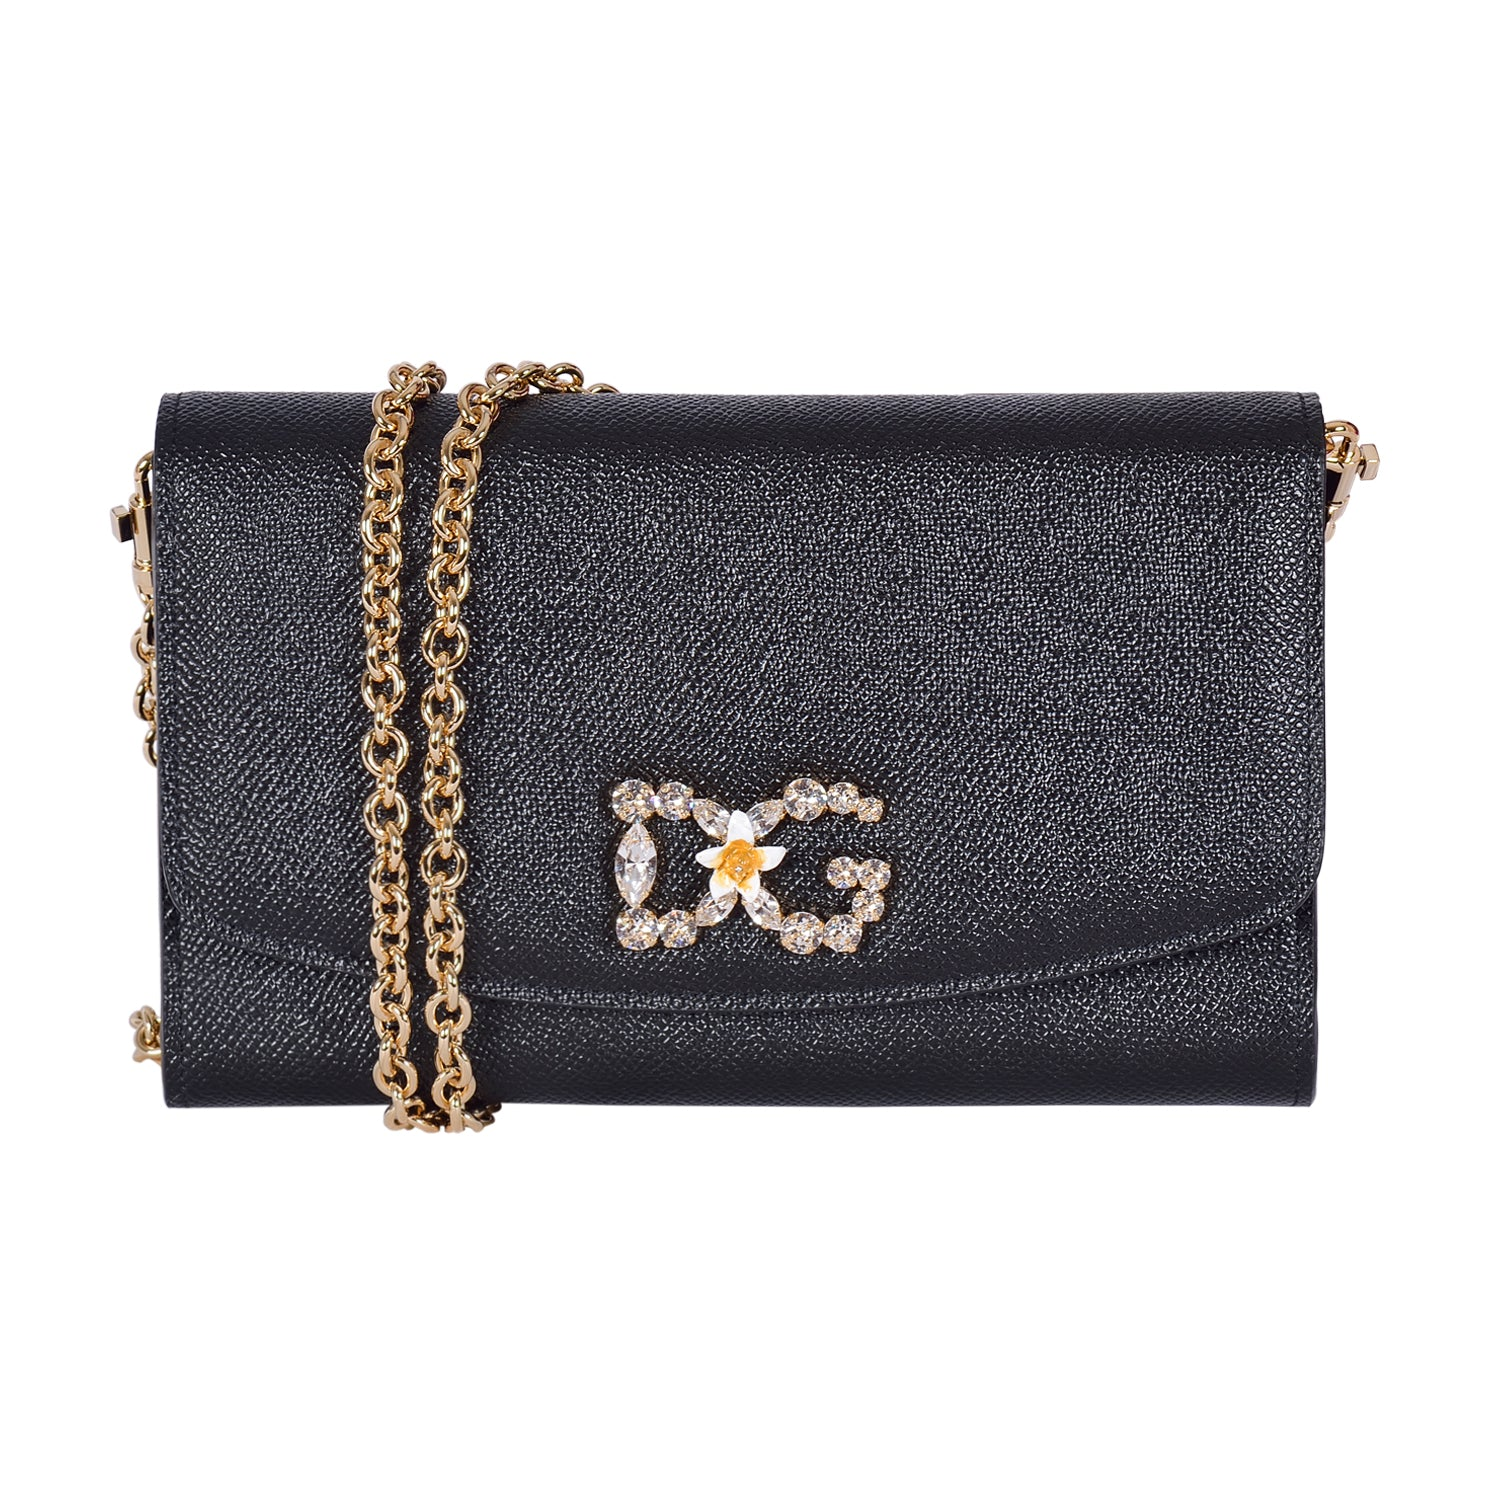 DOLCE & GABBANA Black Dauphine Calfskin Leather Clutch